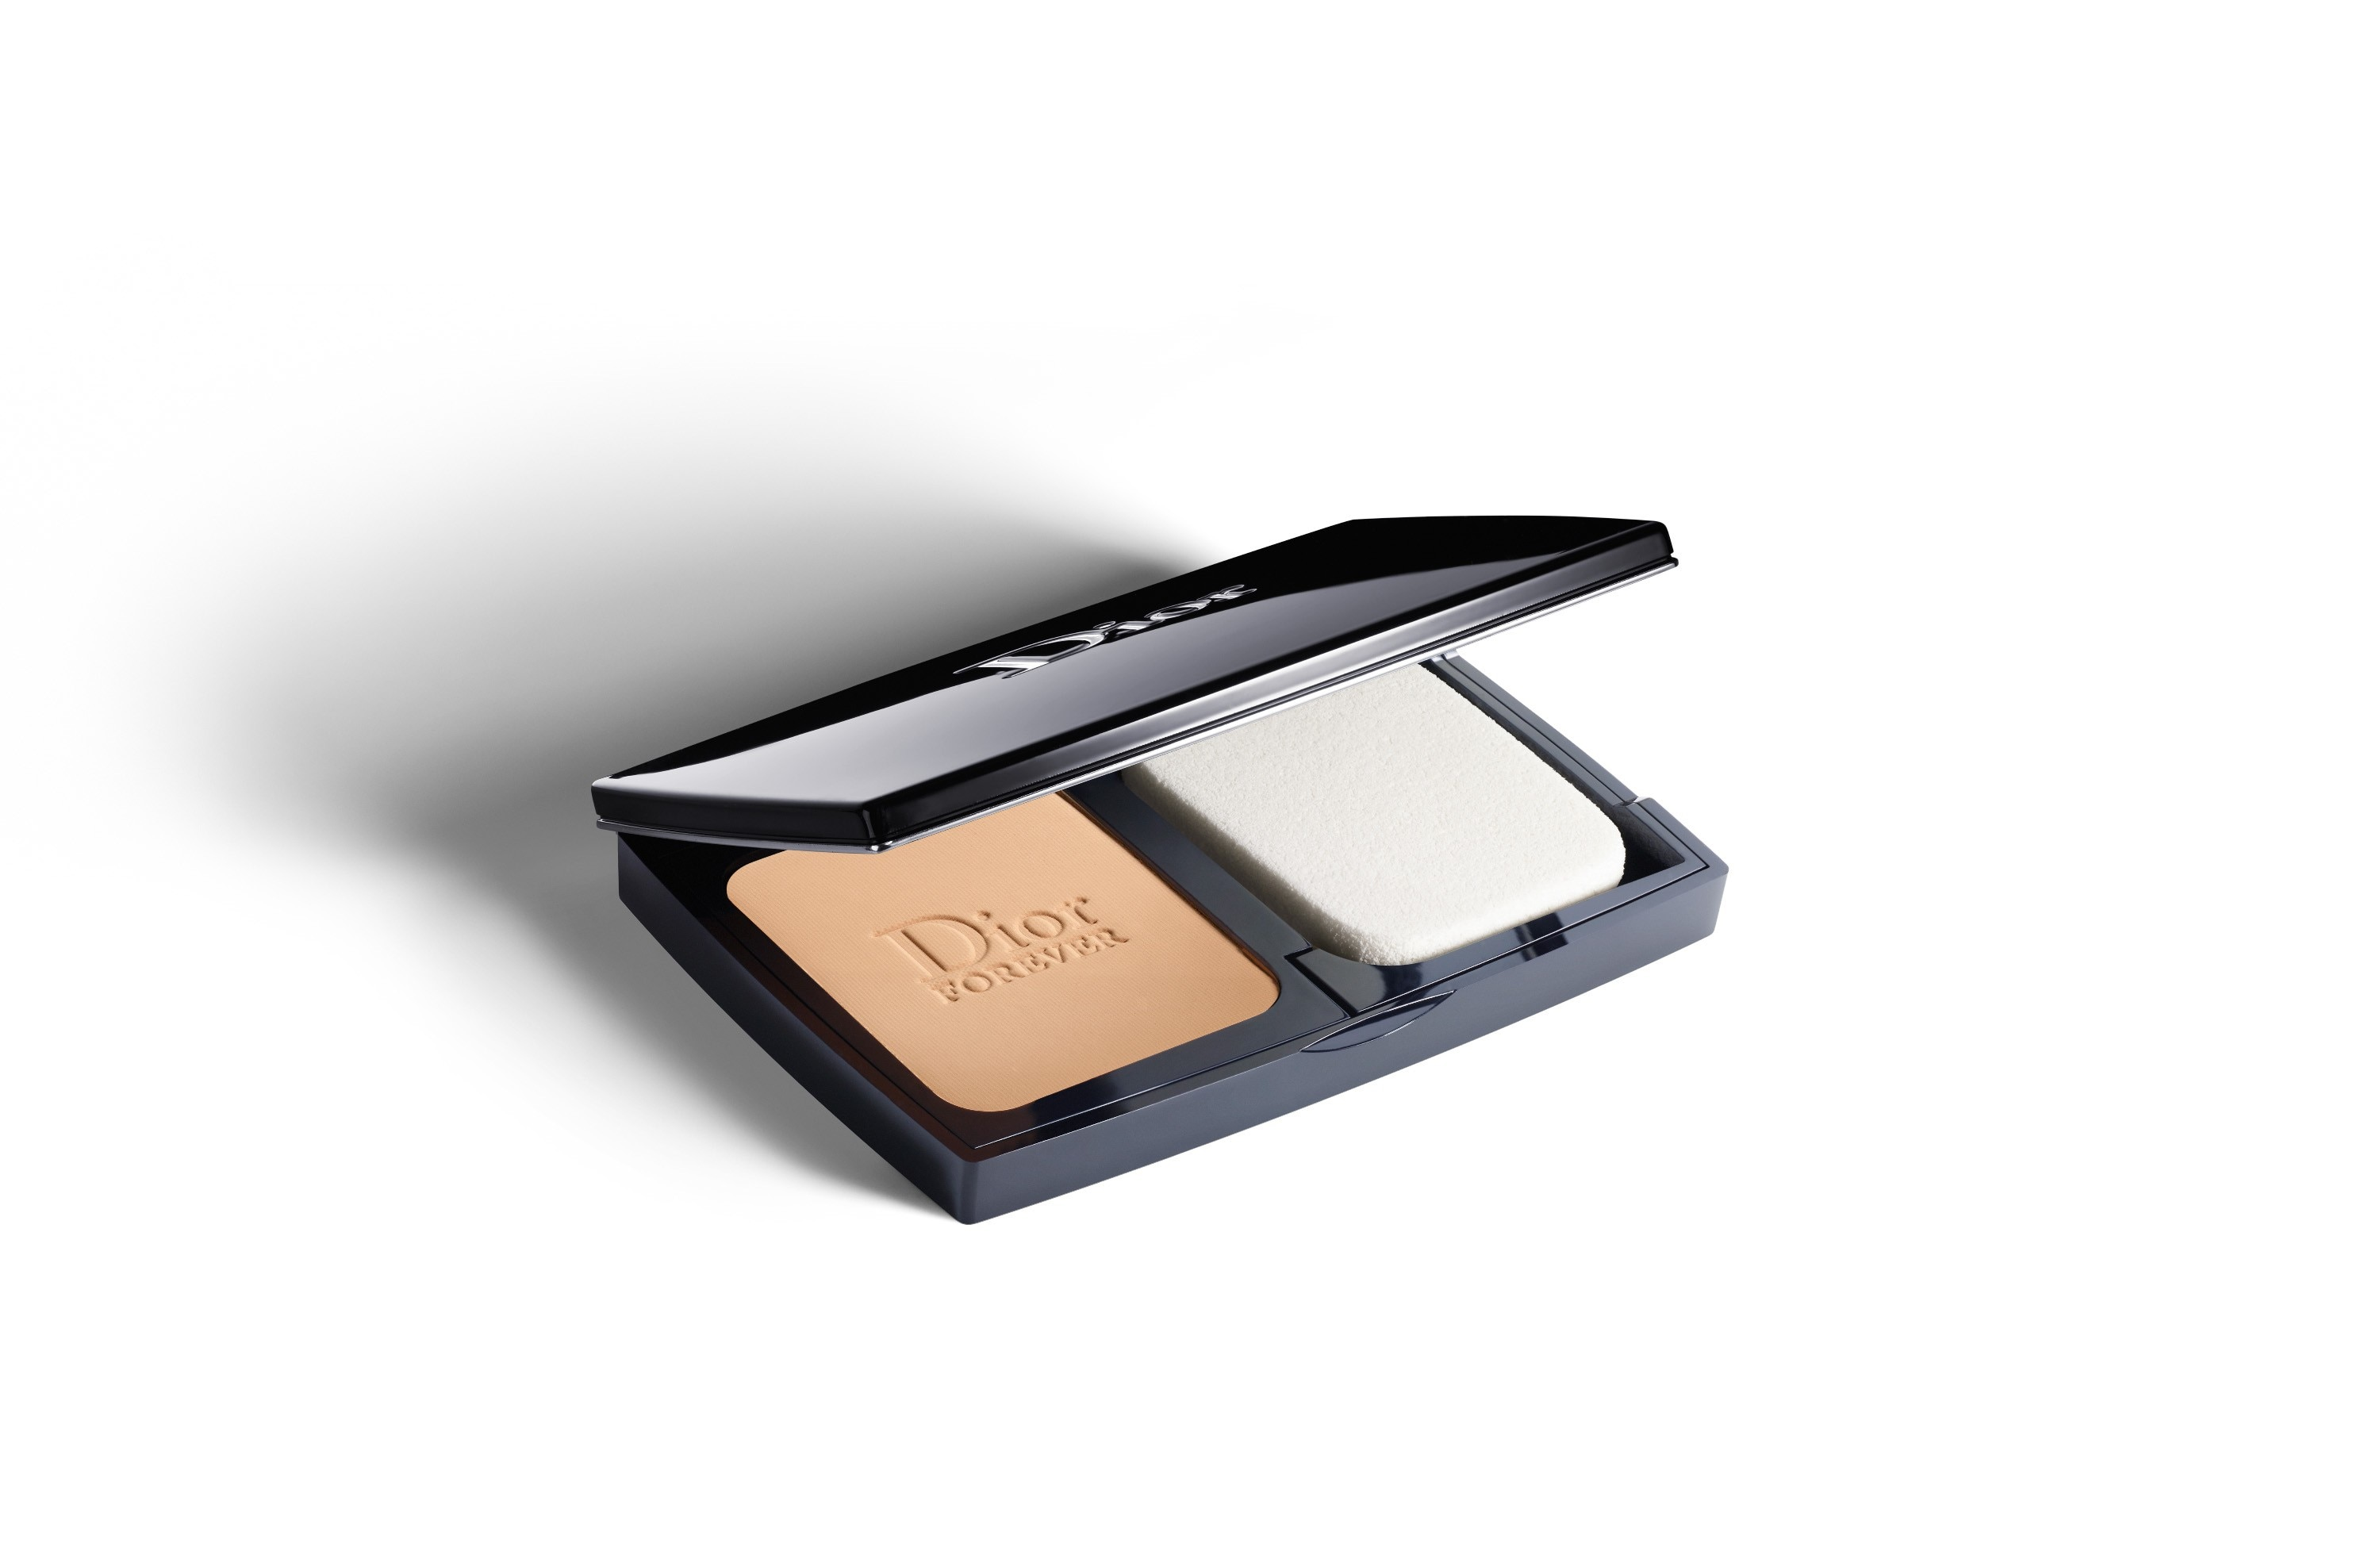 DIORSKIN FOREVER EXTREME CONTROL PERFECT MATTE POWDER